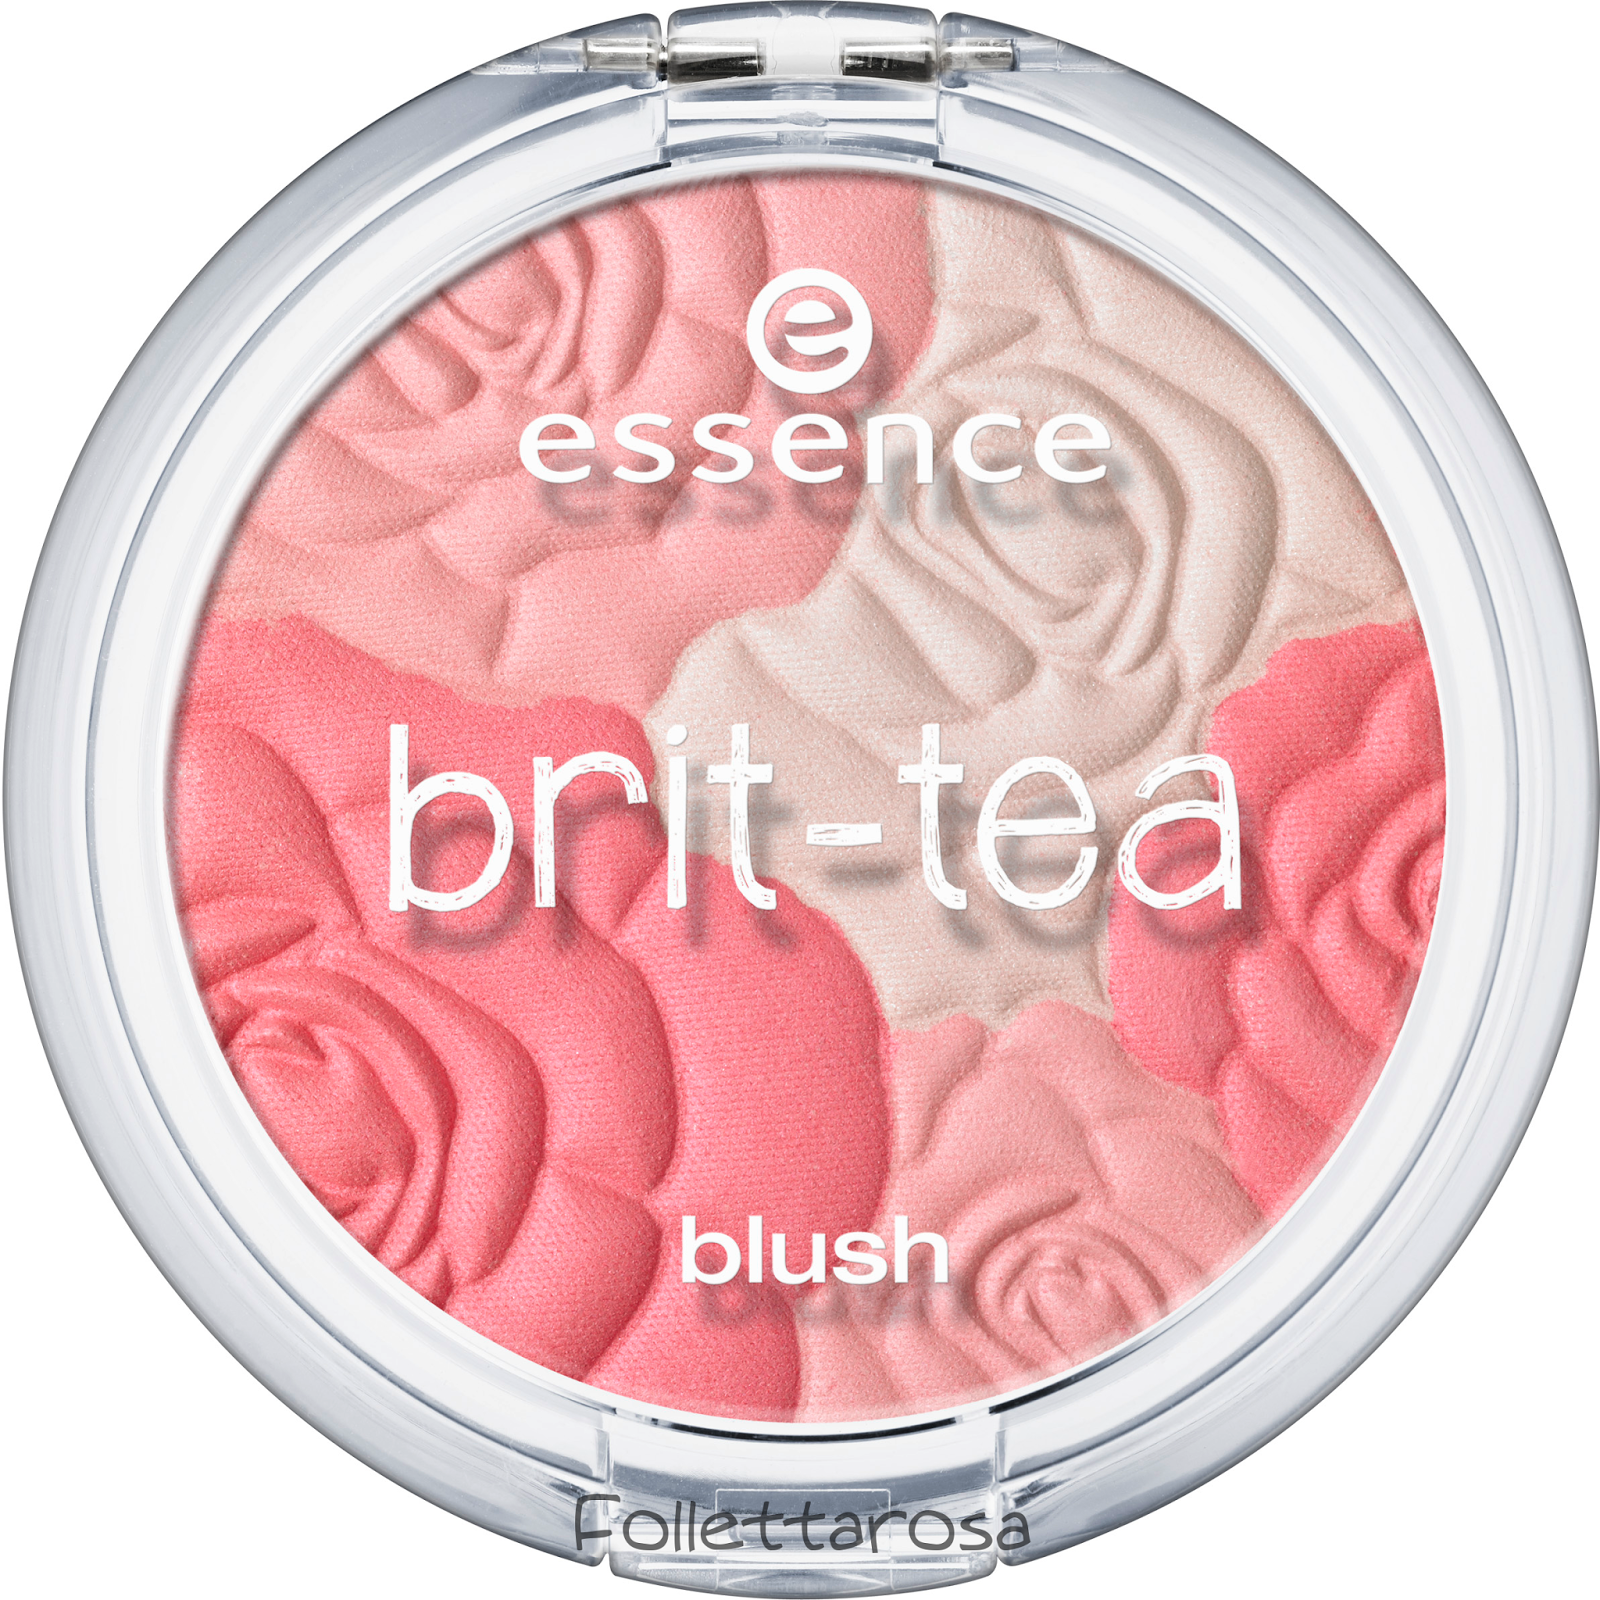 blush brit tea essence